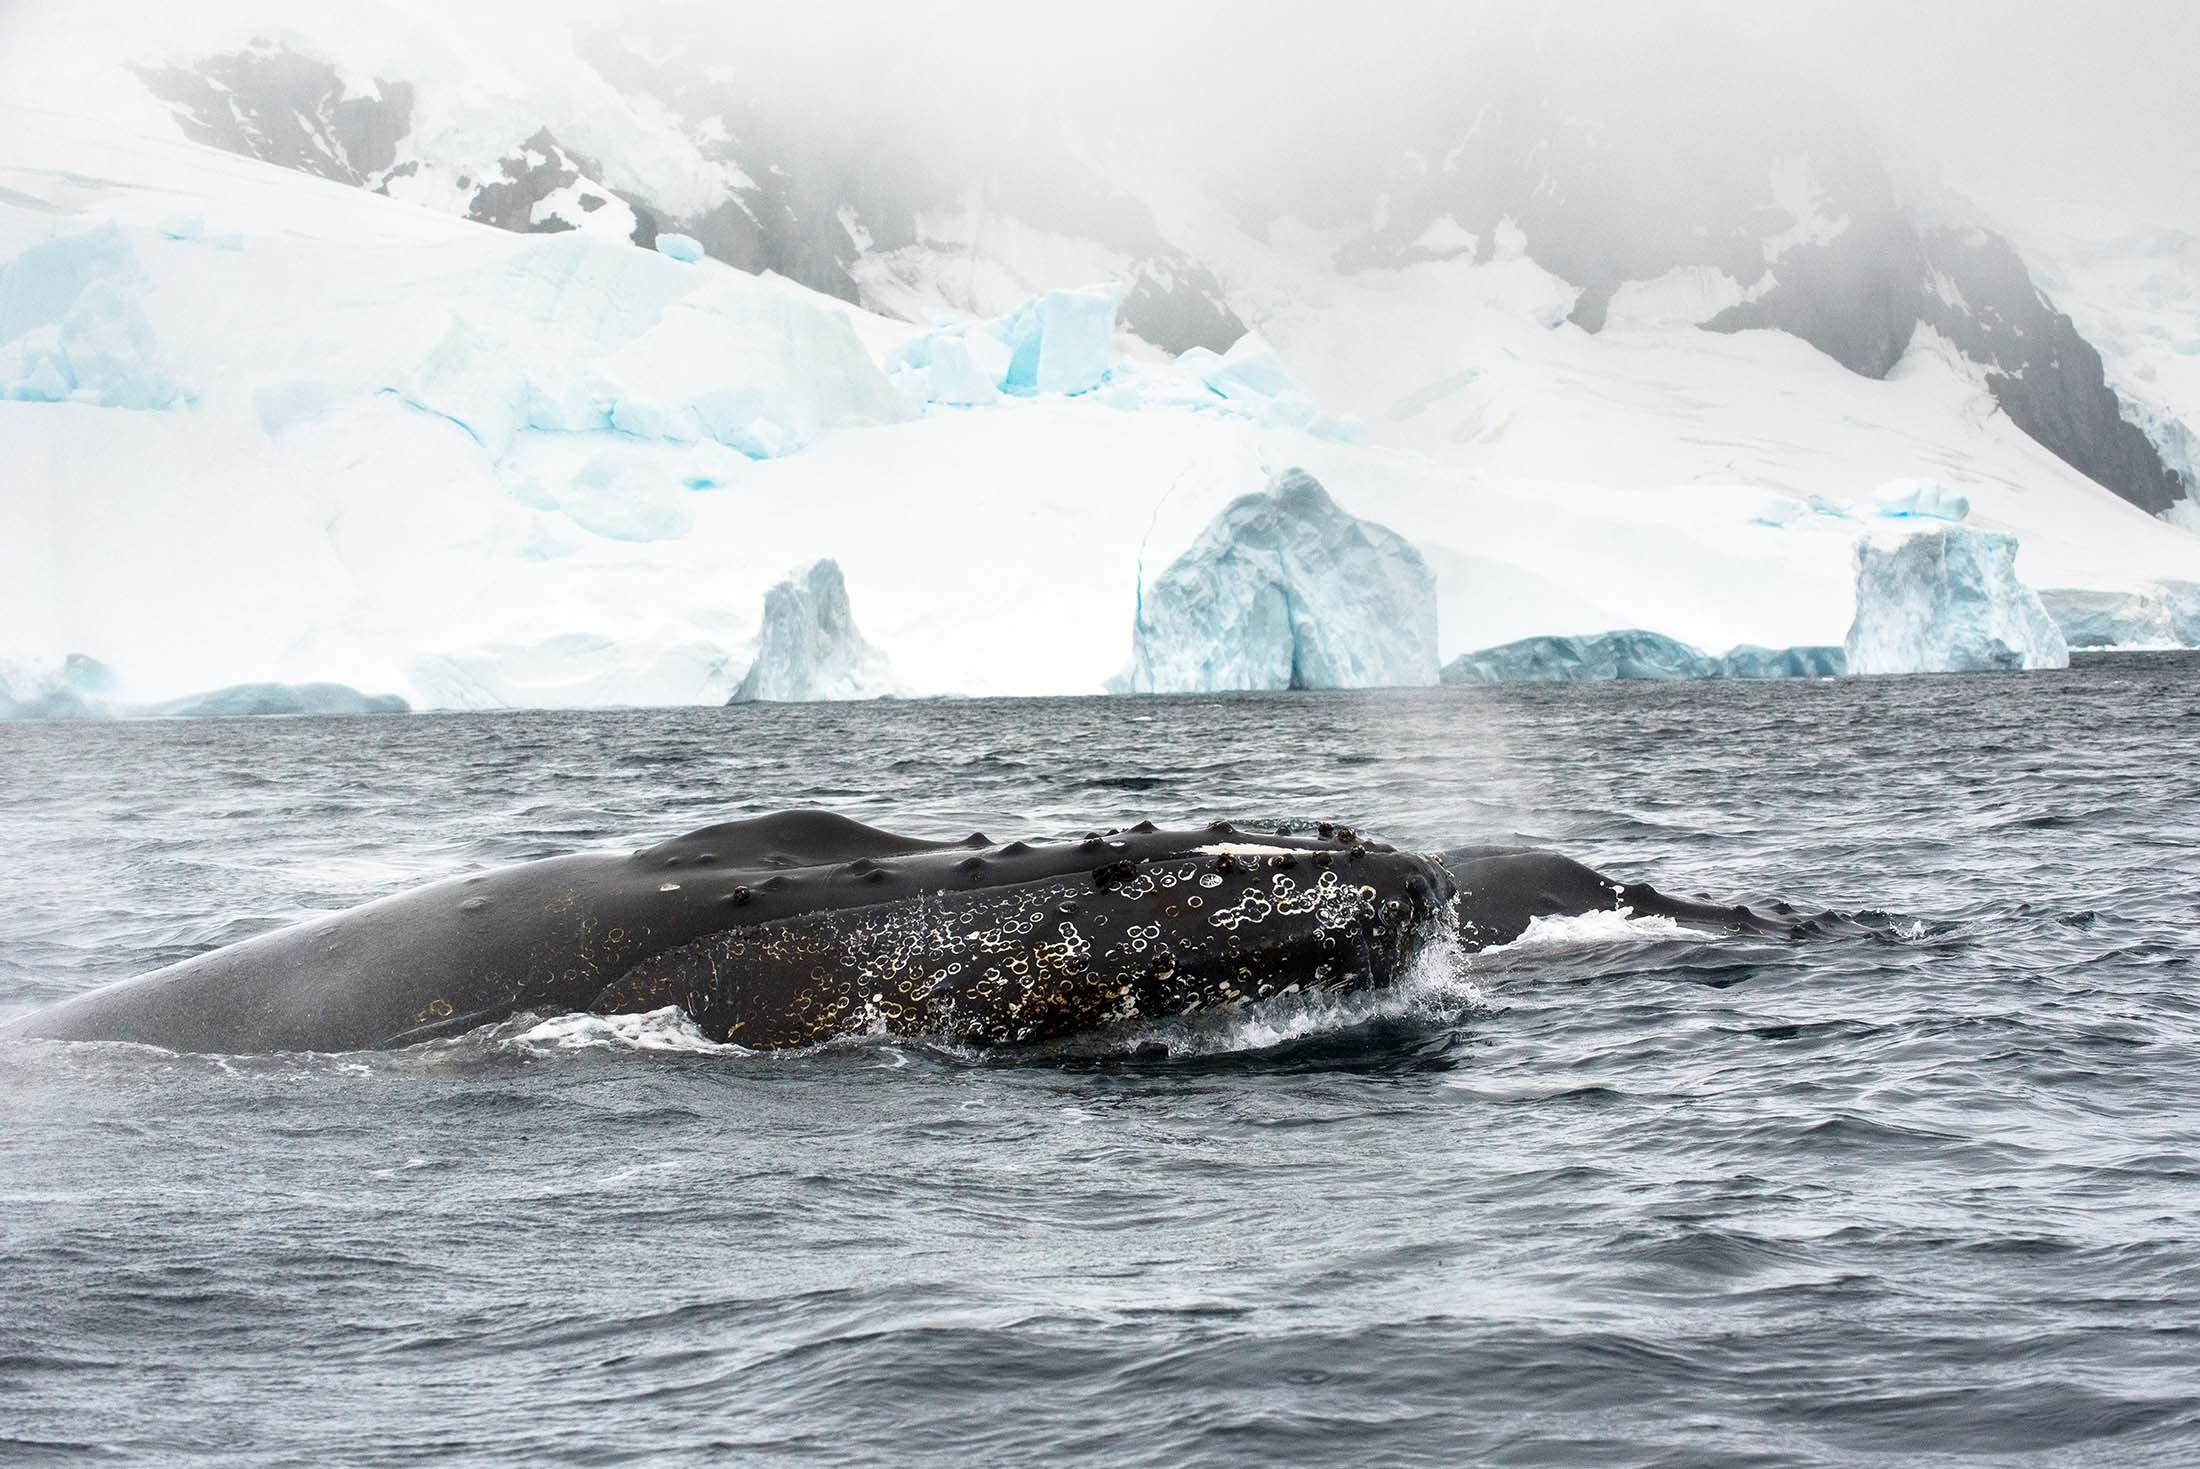 Spotting humpback whales in Antarctica